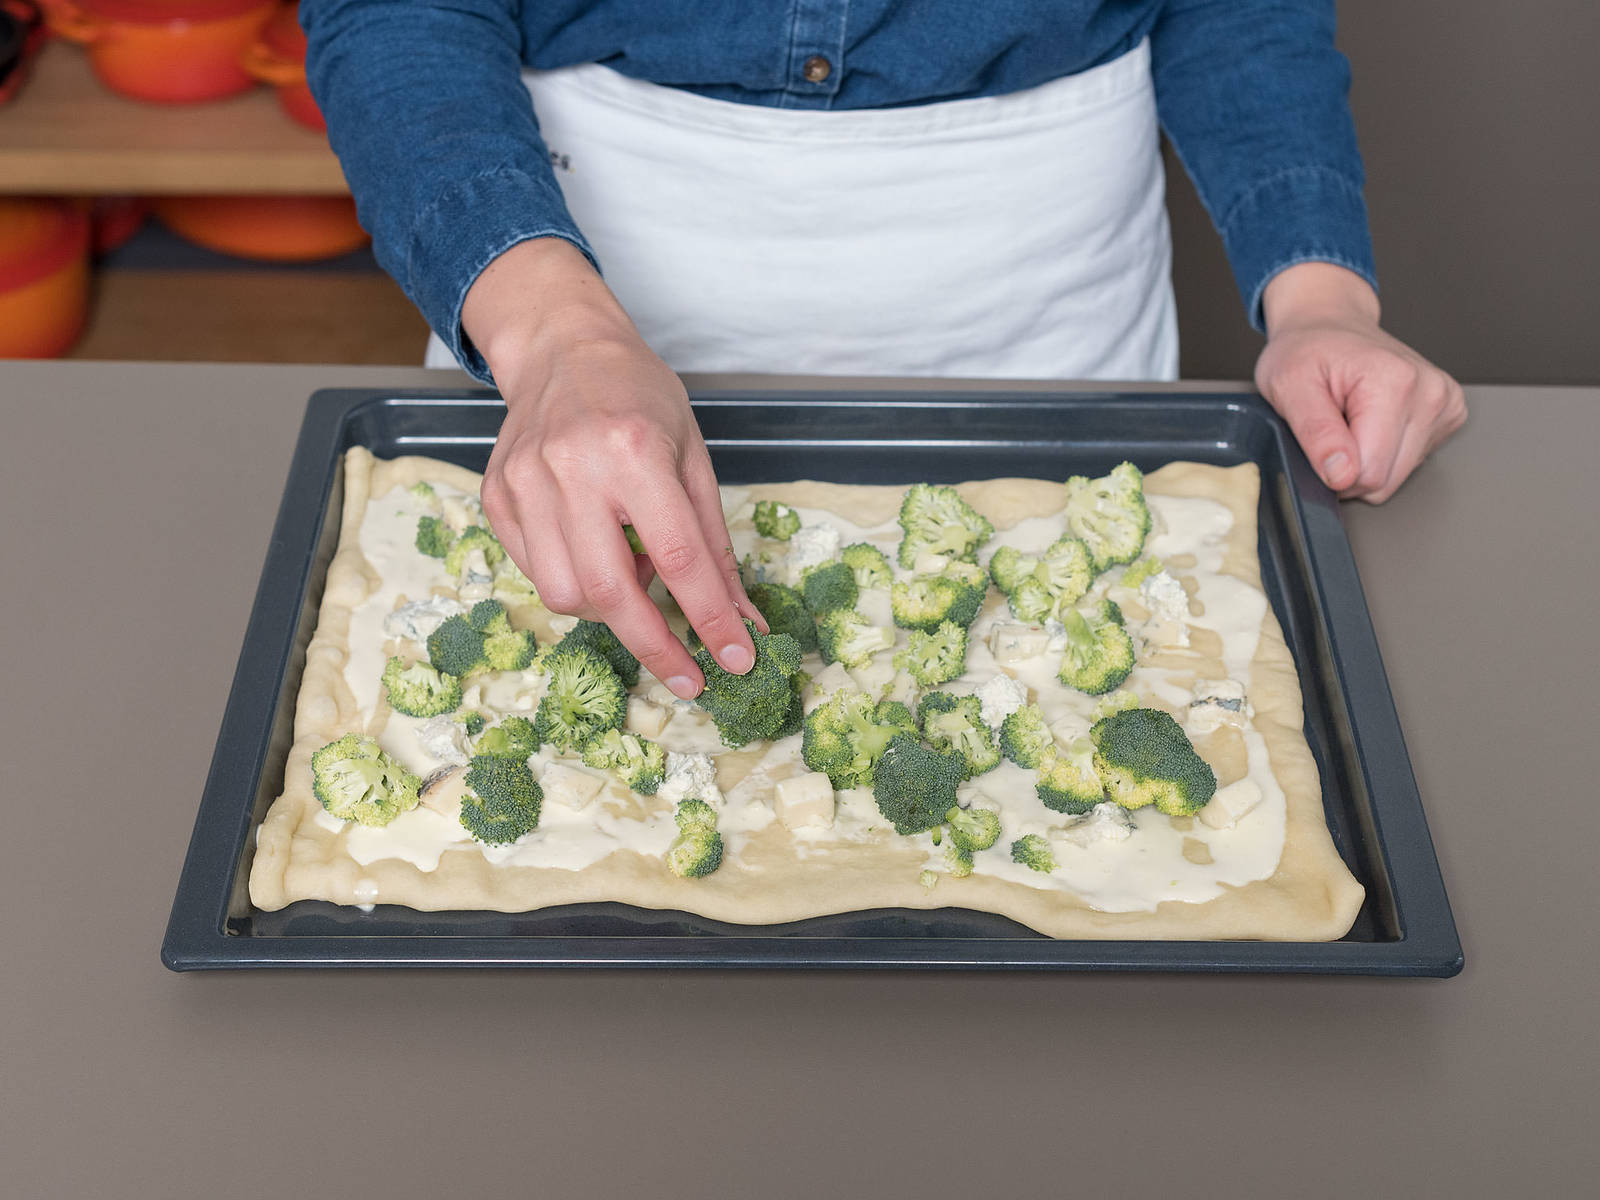 Bake pizza dough in the oven on the lower rack for approx. 4 min., then remove from oven and allow to cool slightly. Spread mascarpone onto the dough, distribute broccoli and gorgonzola evenly on top, and sprinkle with chopped almonds.